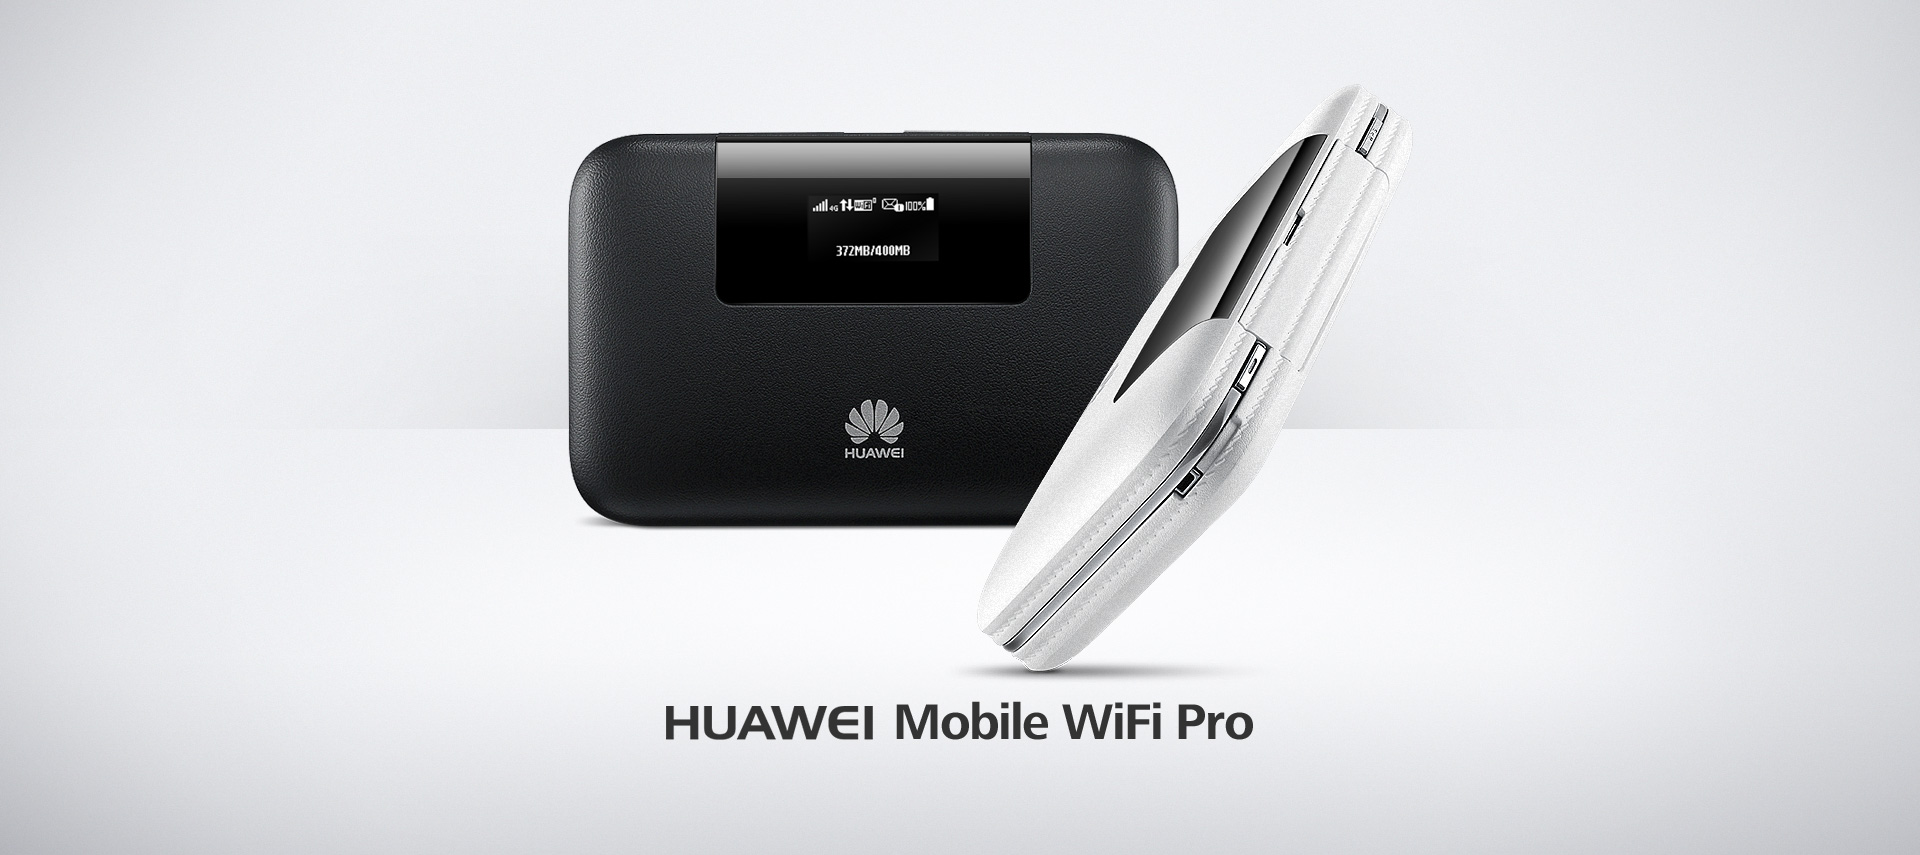 Huawei carrier wifi